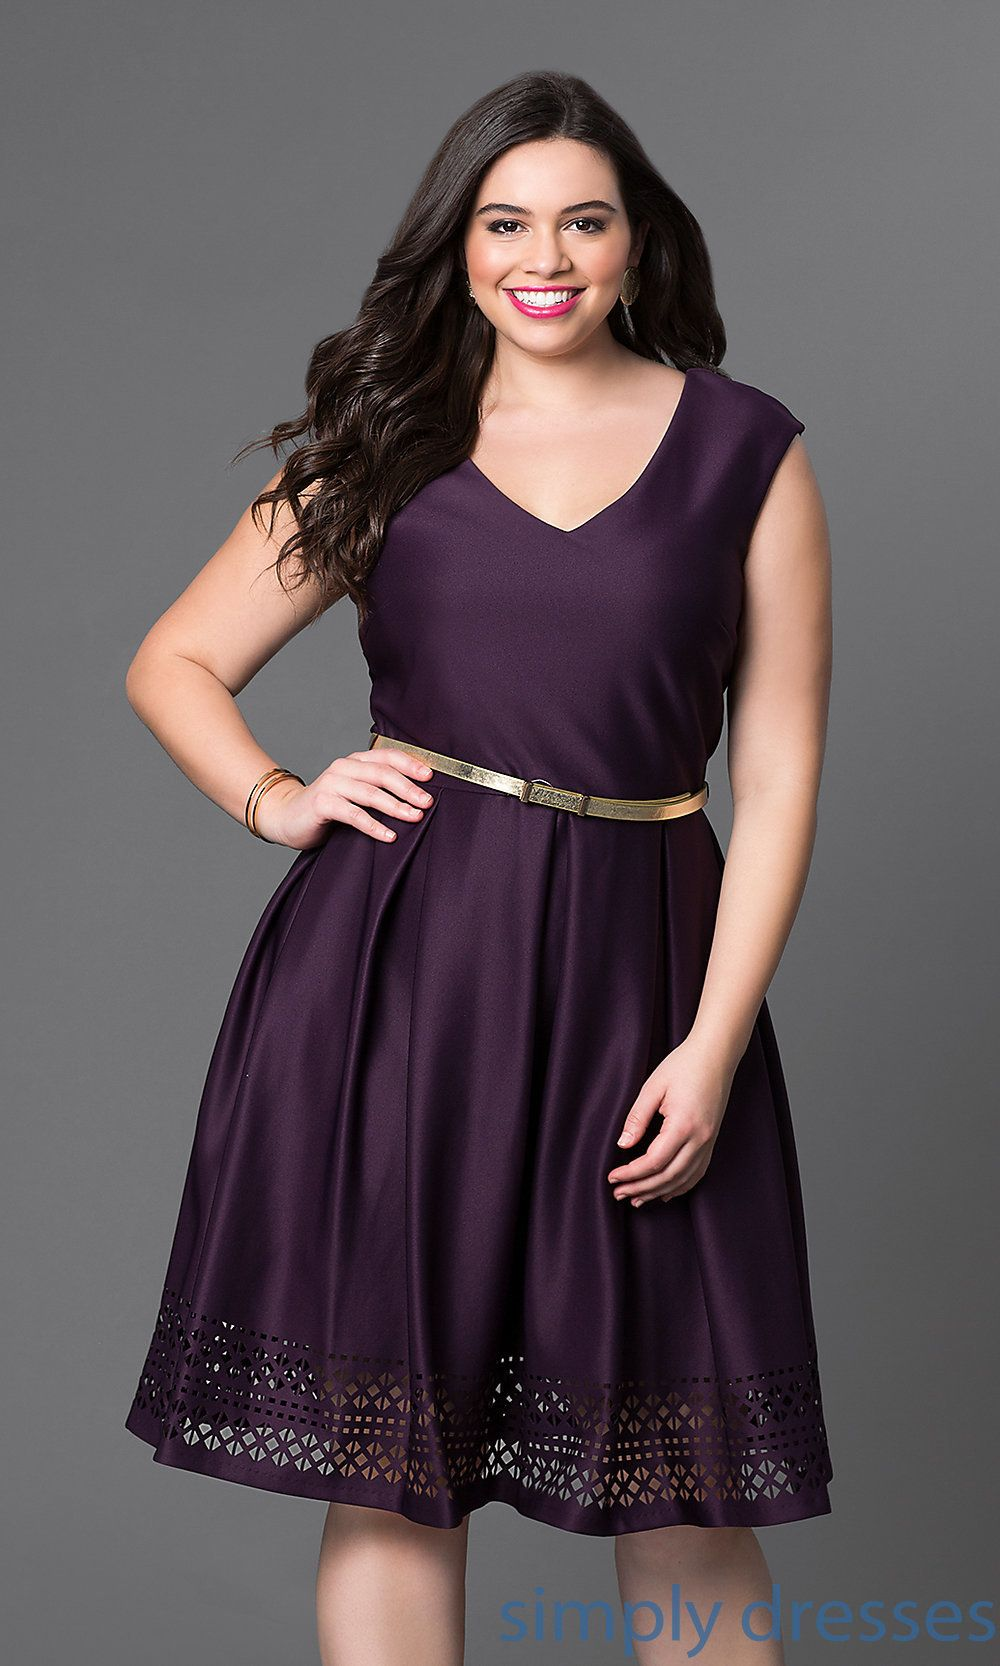 Eggplant-Purple Short A-Line Plus-Size Party Dress | Plus ...